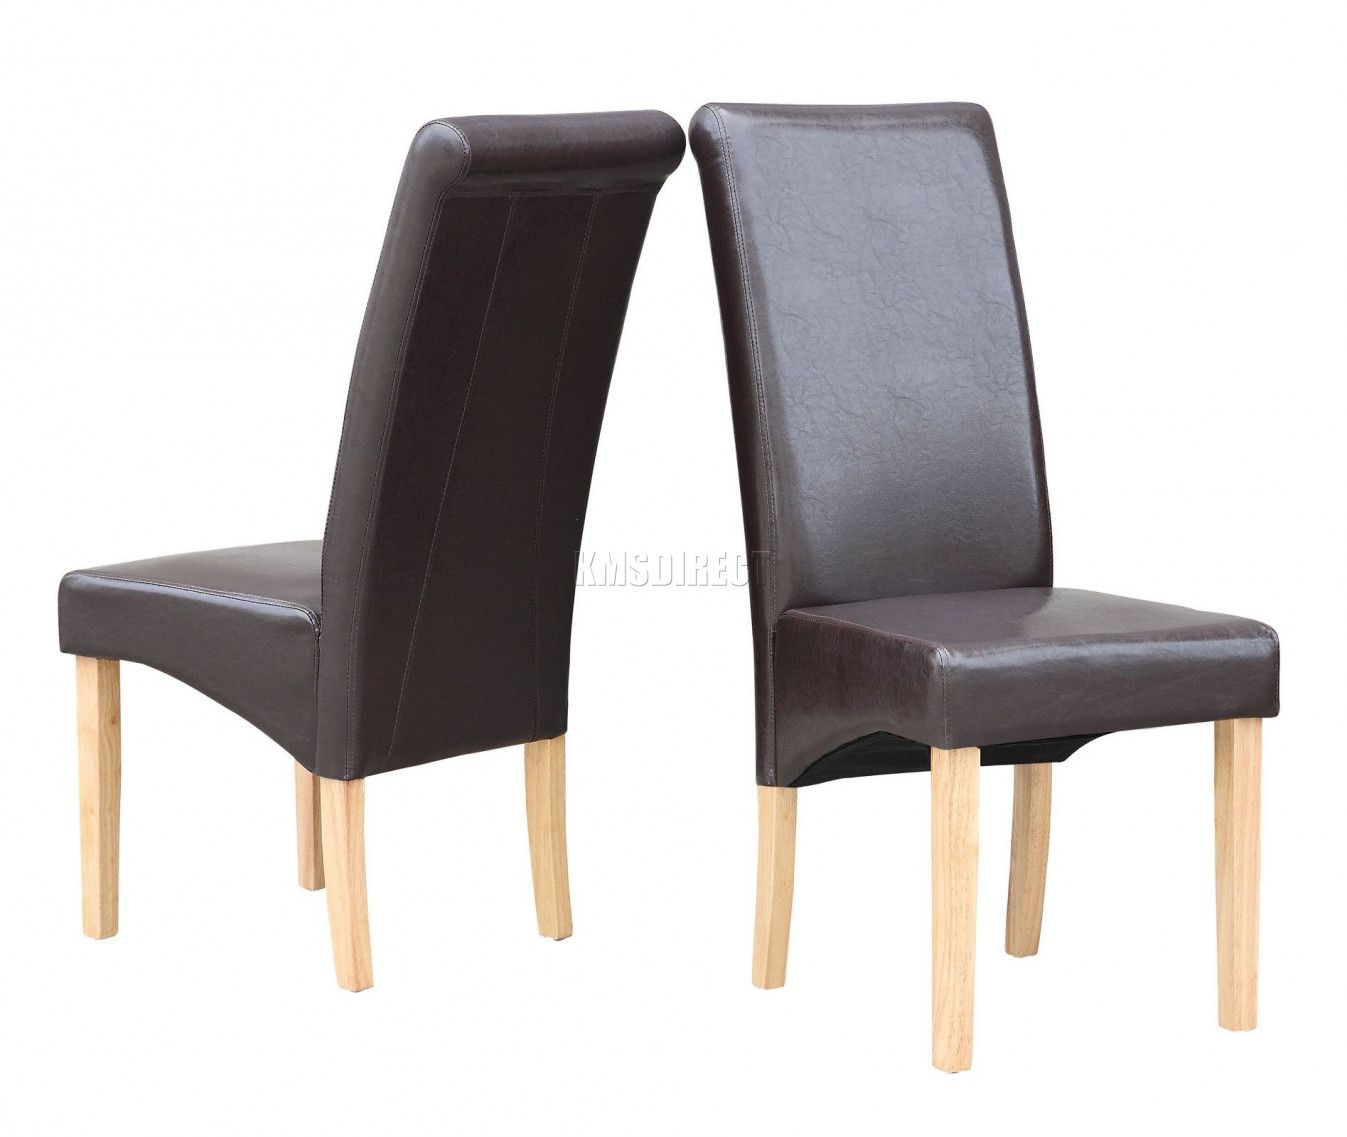 55 Black Leather High Back Dining Chairs Modern Vintage Furniture Check More At Http